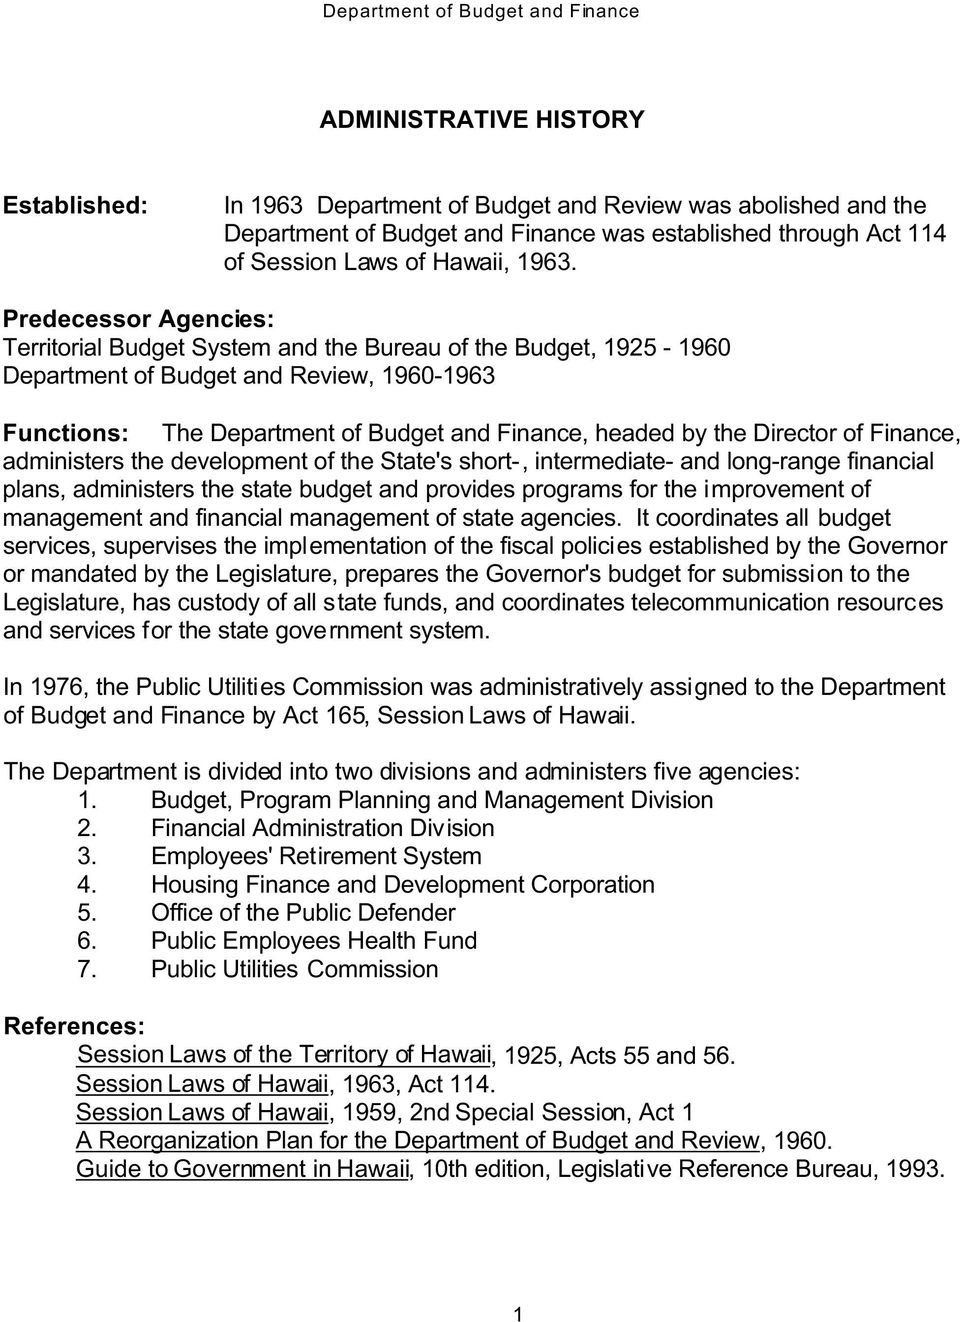 Director of Finance, administers the development of the State's short-, intermediate- and long-range financial plans, administers the state budget and provides programs for the improvement of